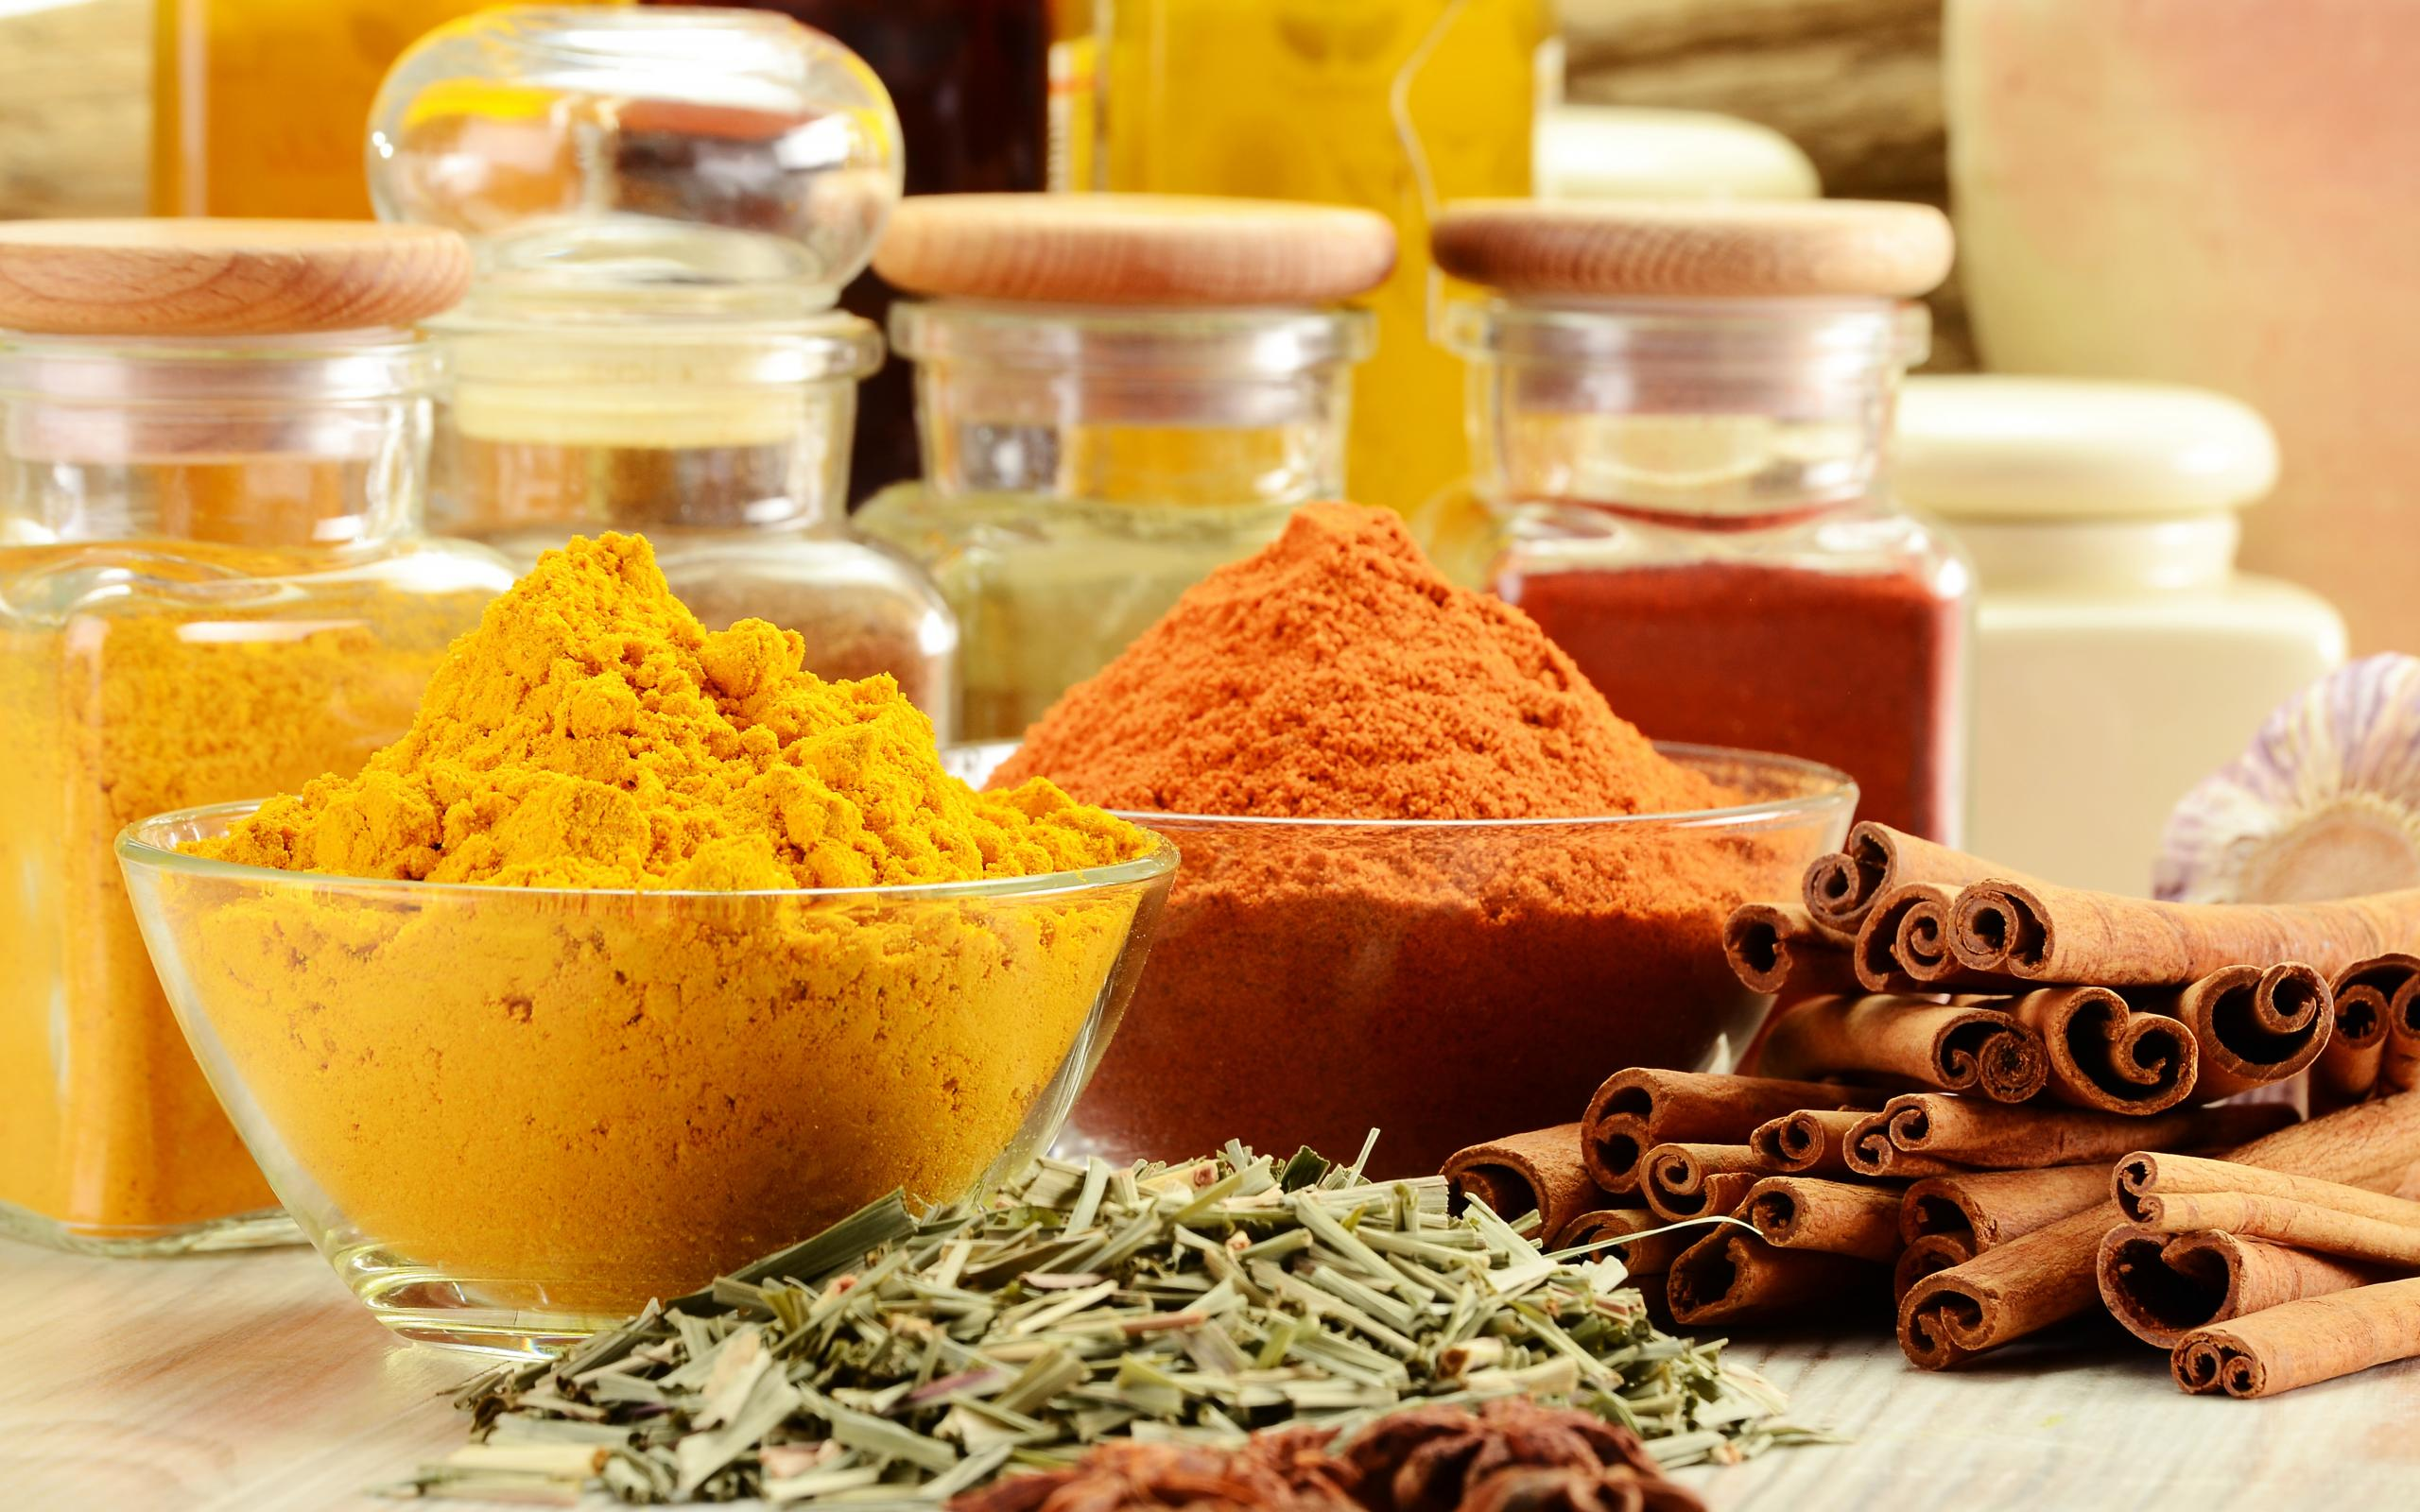 Herbs and spices computer wallpapers desktop backgrounds for 7 spices asian cuisine